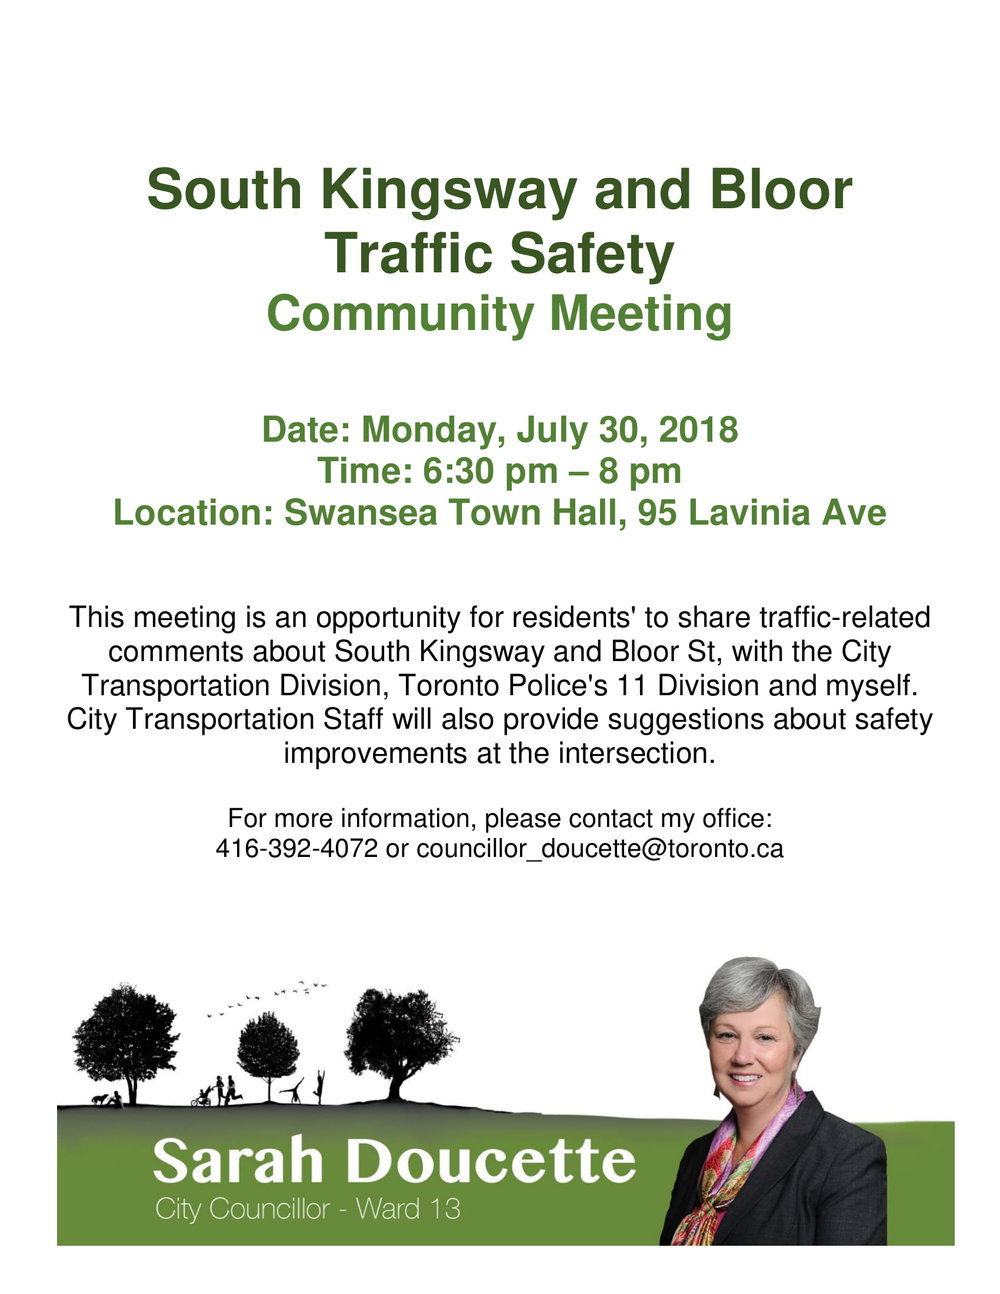 South Kingsway and Bloor - July 30, 2018 Community Meeting-1.jpg